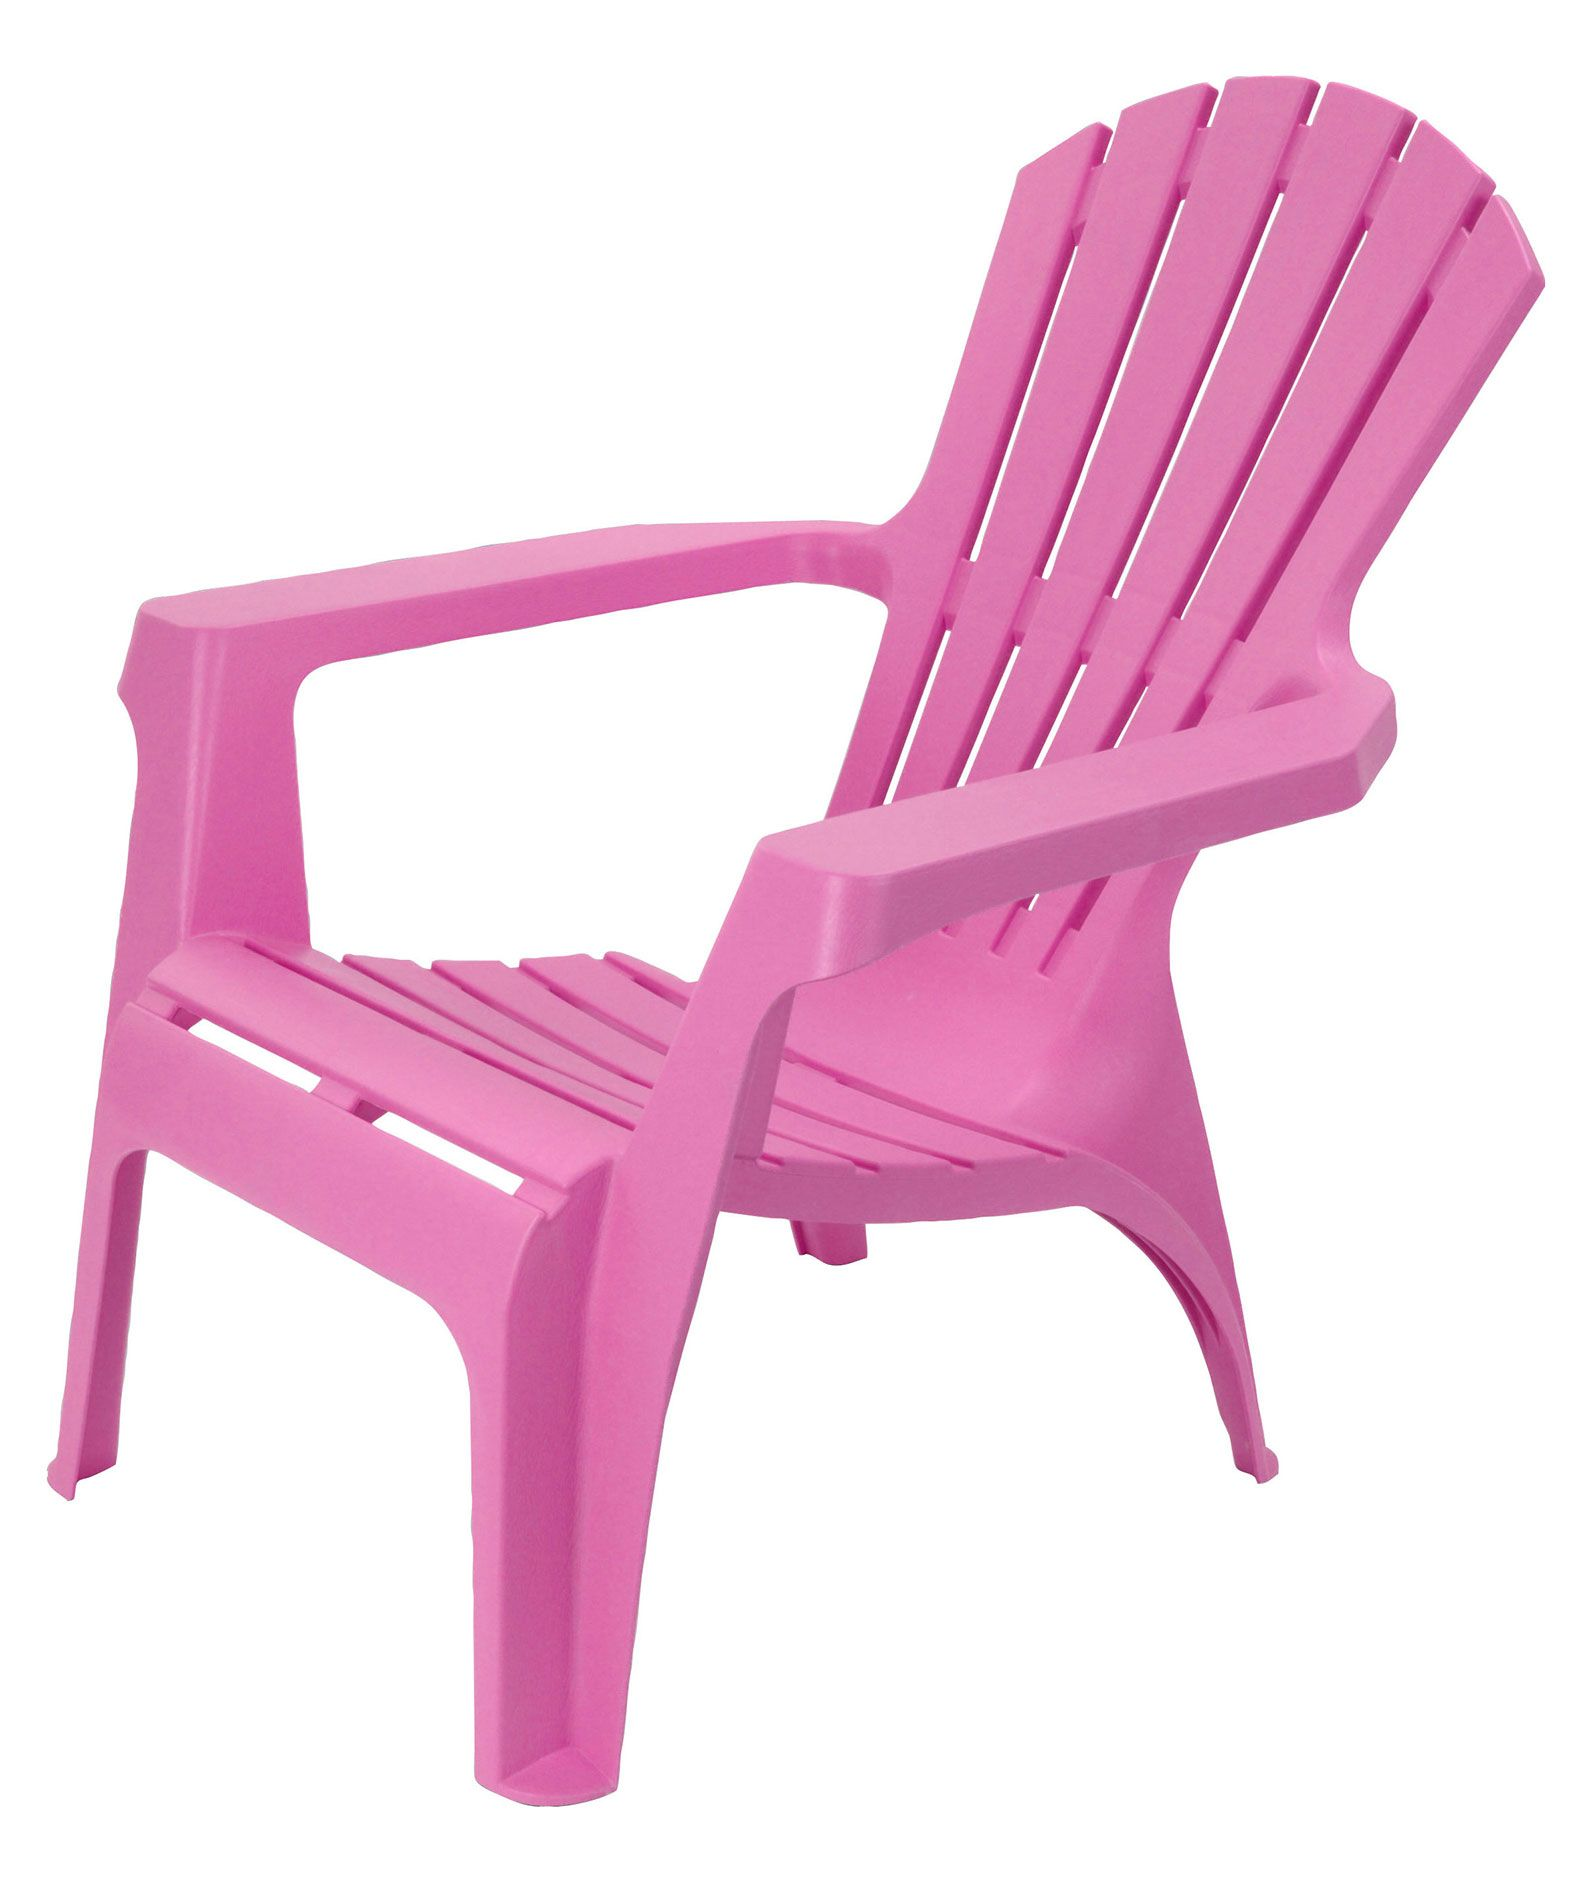 Pink Garden Table And Chair Set: Garden Chairs, Patio Chairs